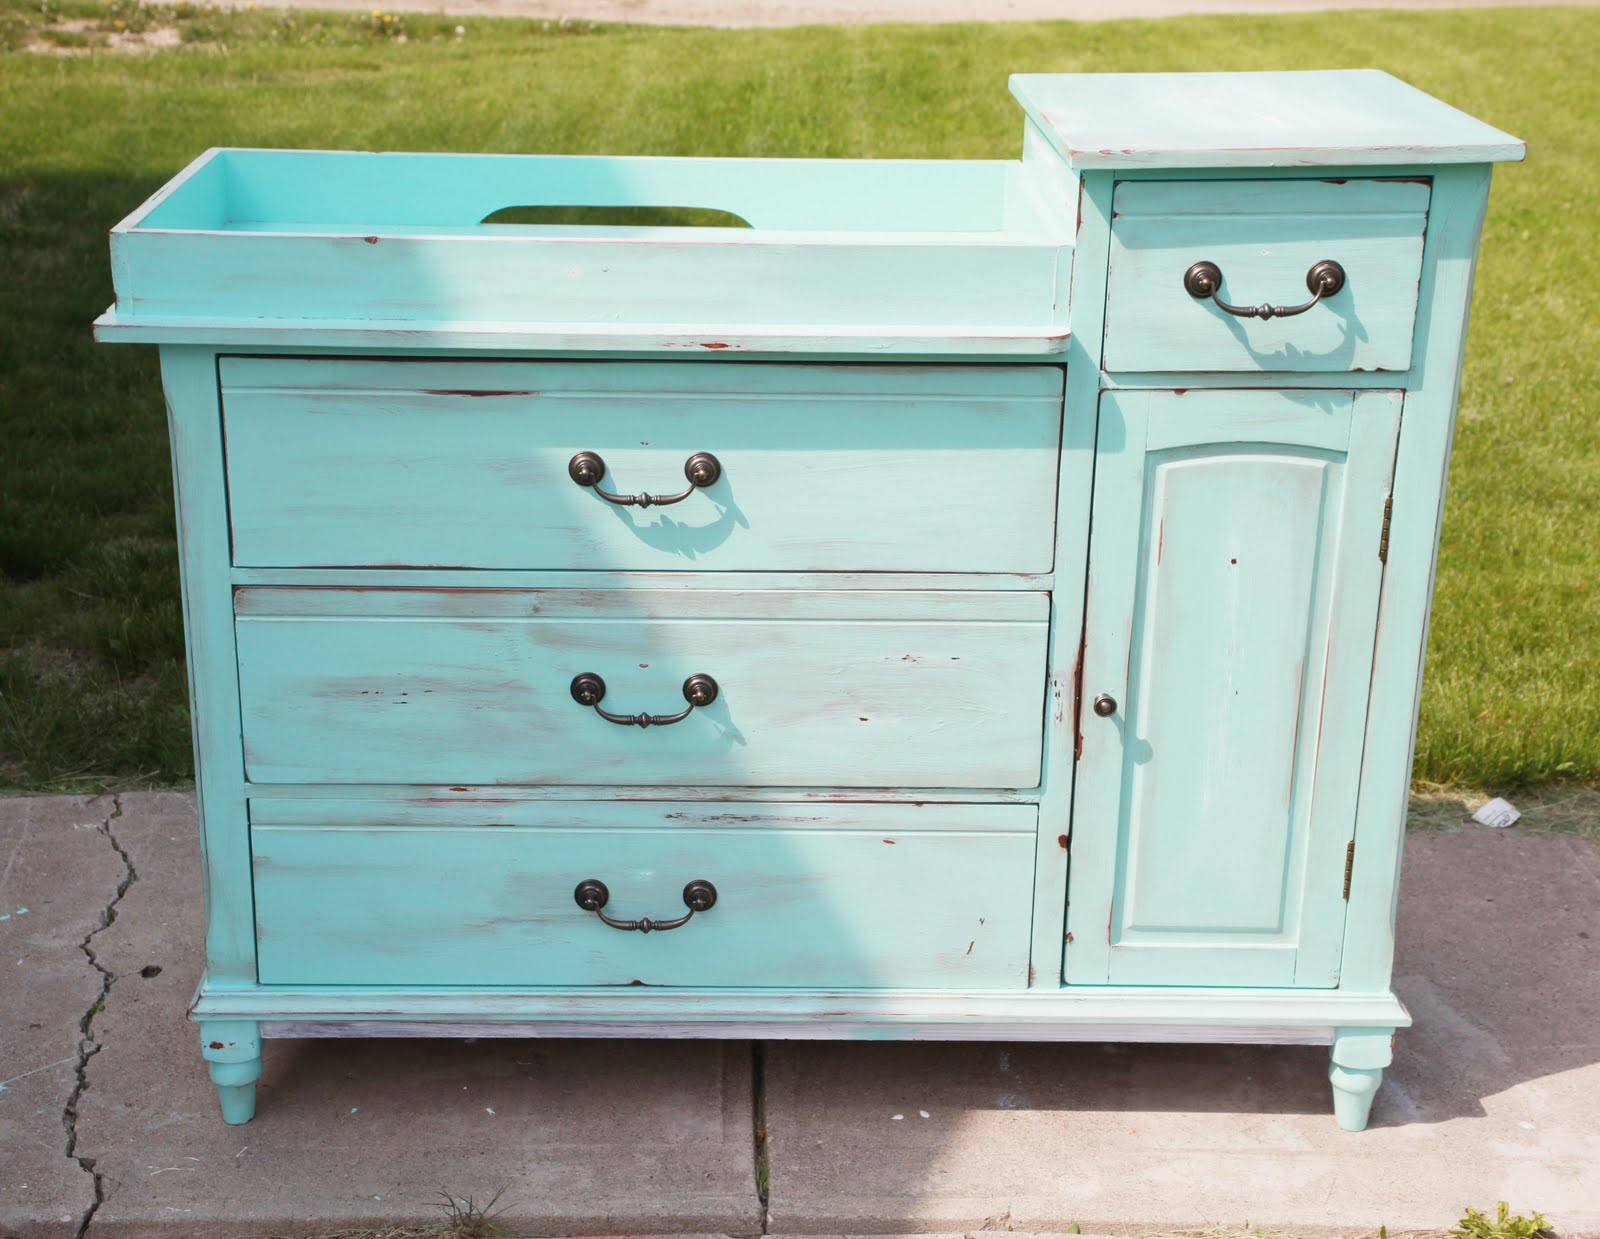 achieving proverbs 31 baby nursery part iii my artsy changing table redo. Black Bedroom Furniture Sets. Home Design Ideas